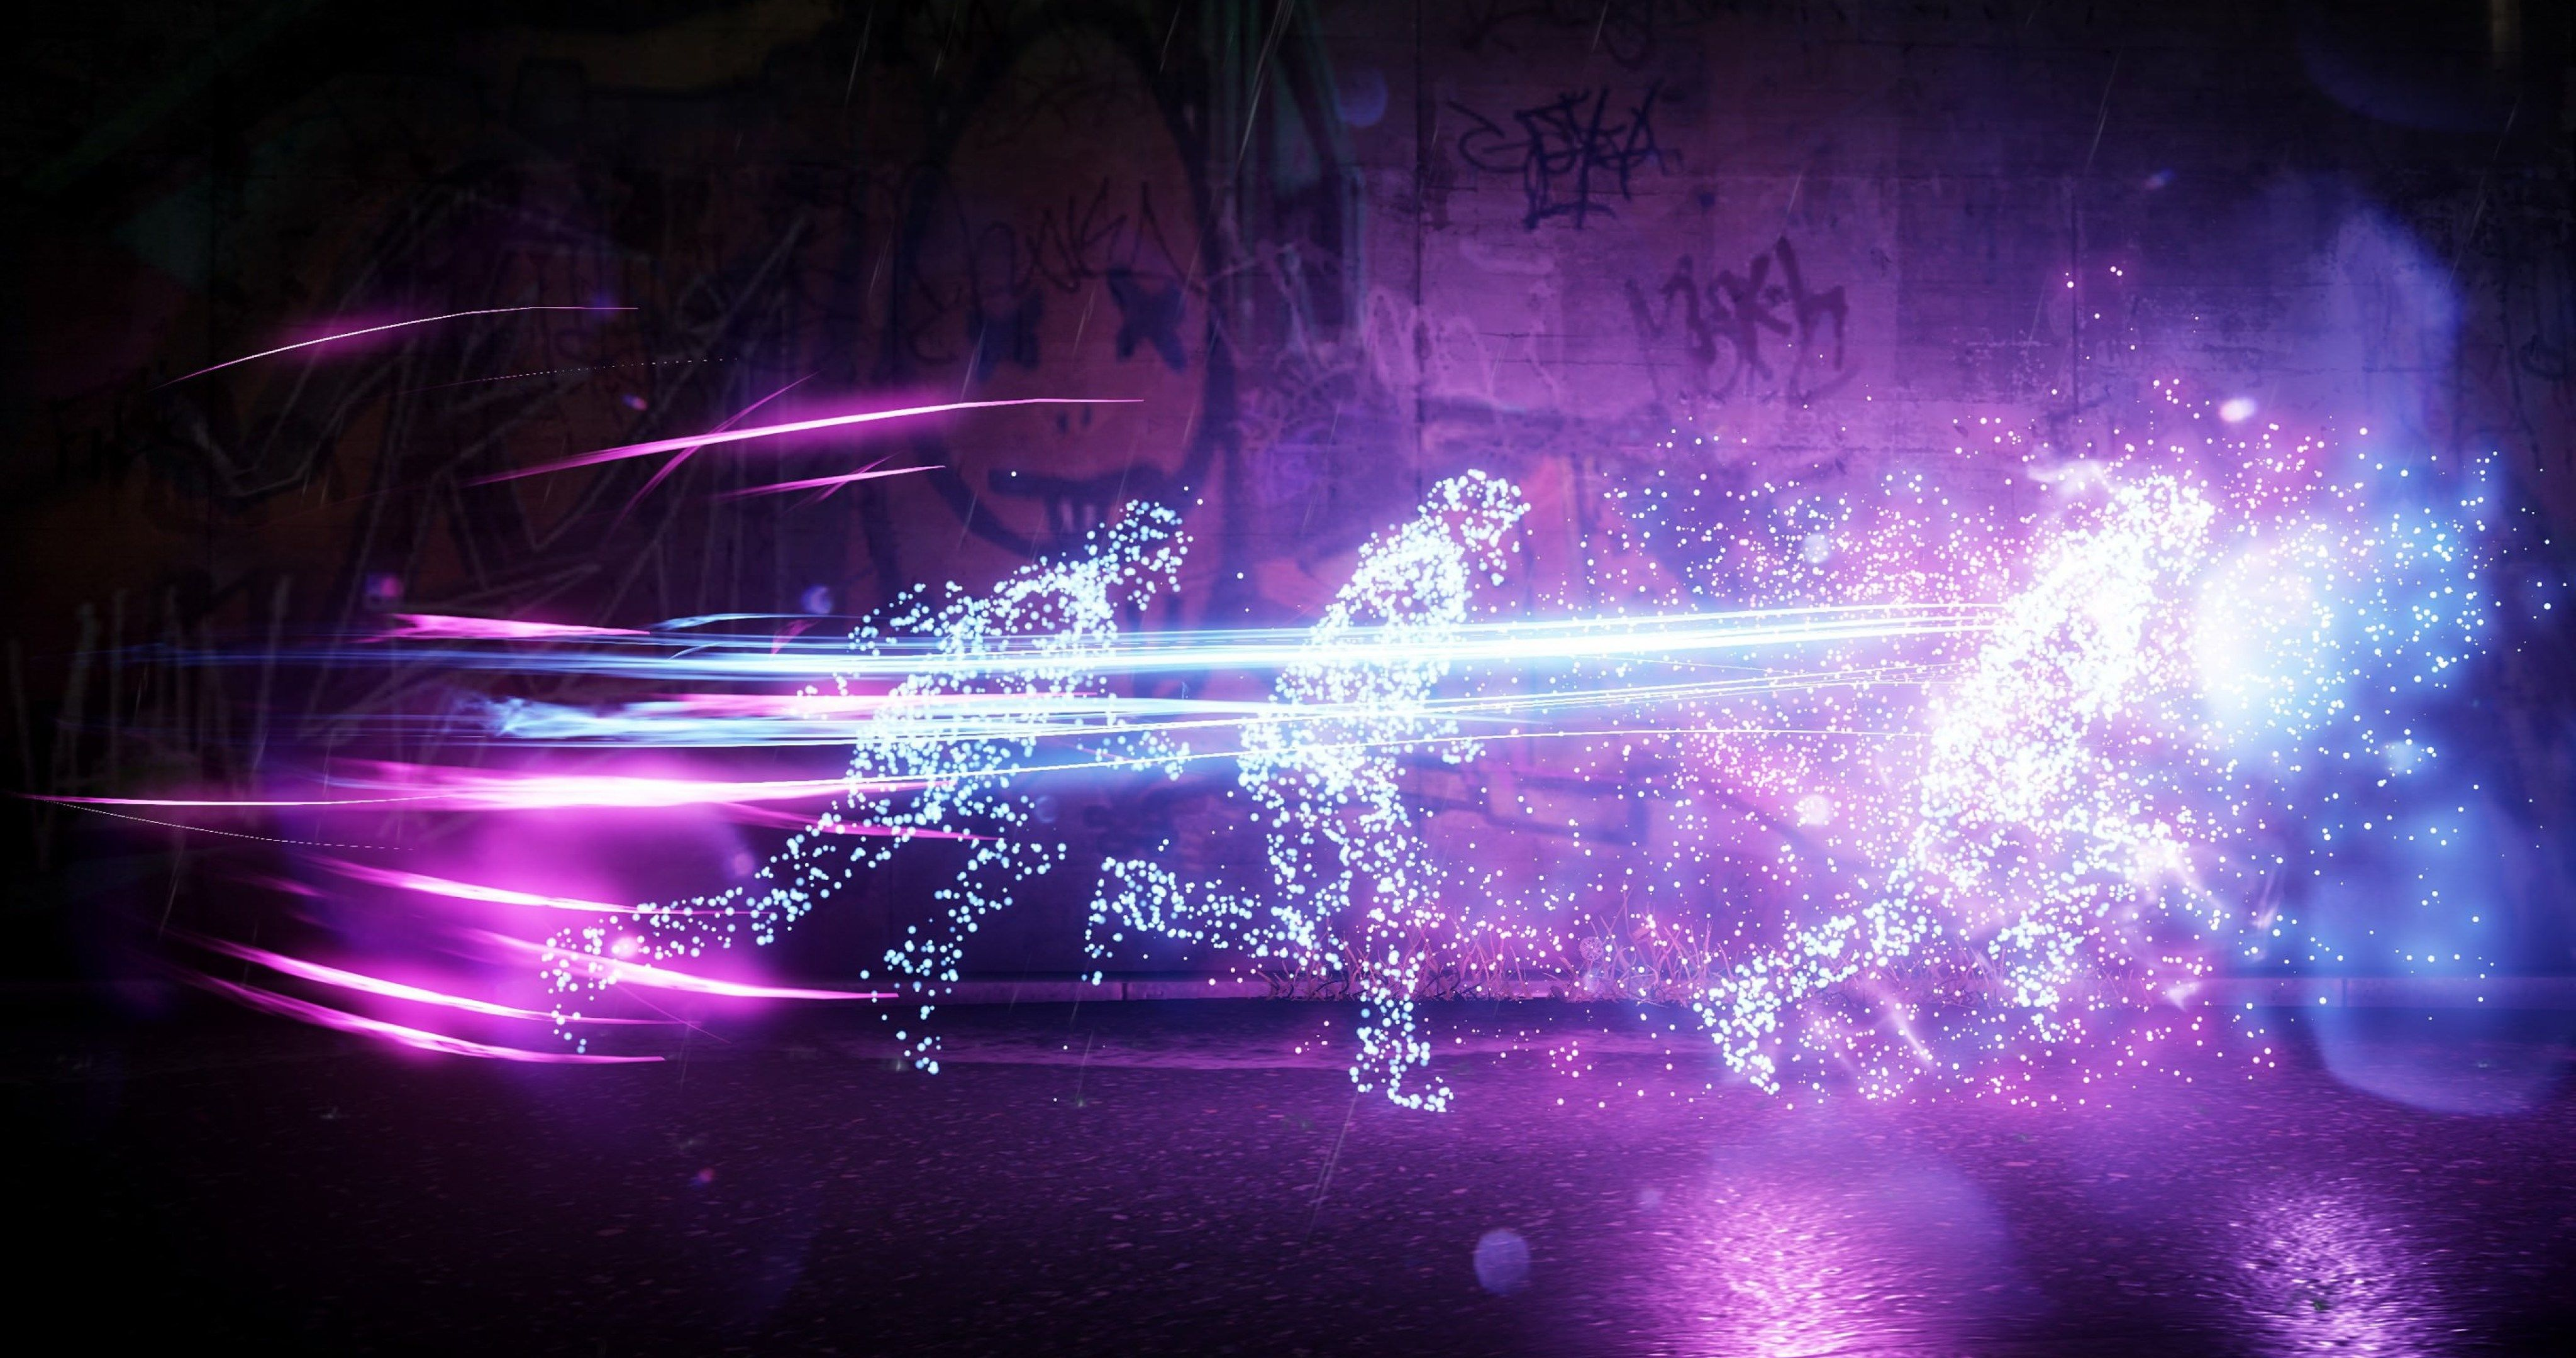 Infamous Second Son Neon 4k Ultra Hd Wallpaper Infamous Second